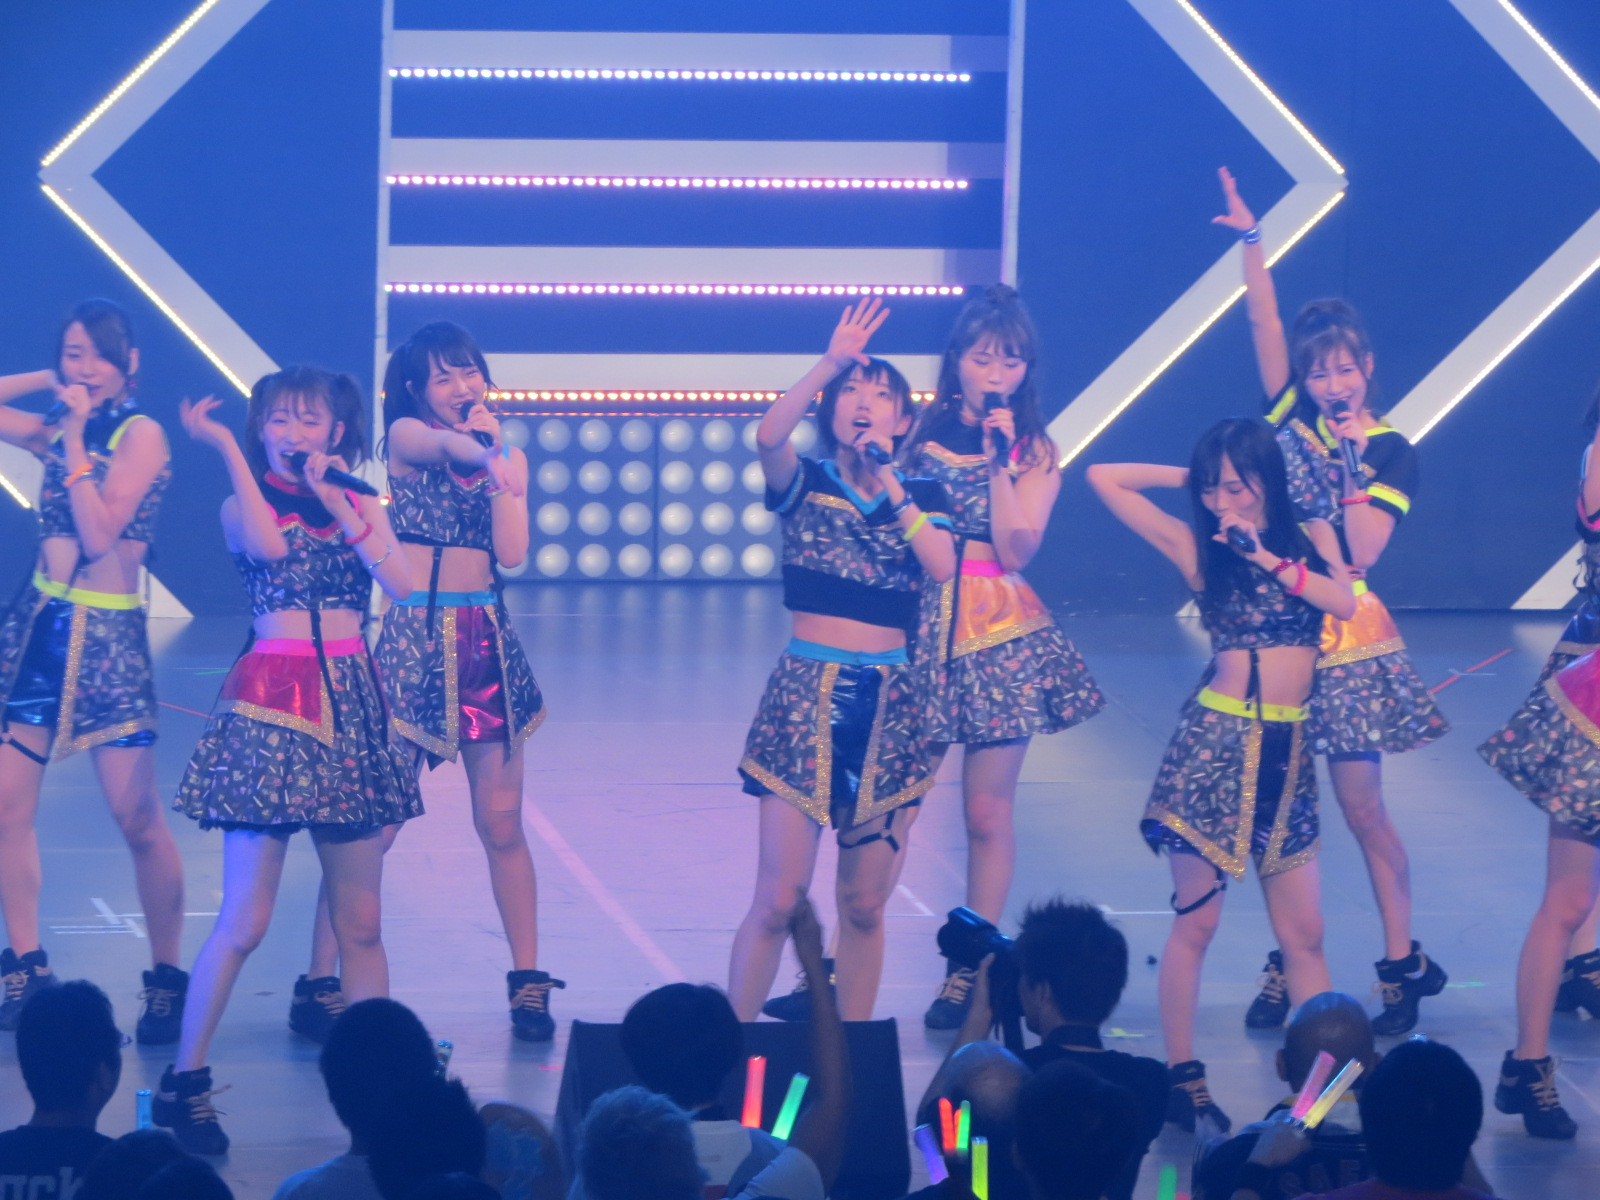 NMB48 LIVE TOUR 2018 in Summer・石川公演の画像-092